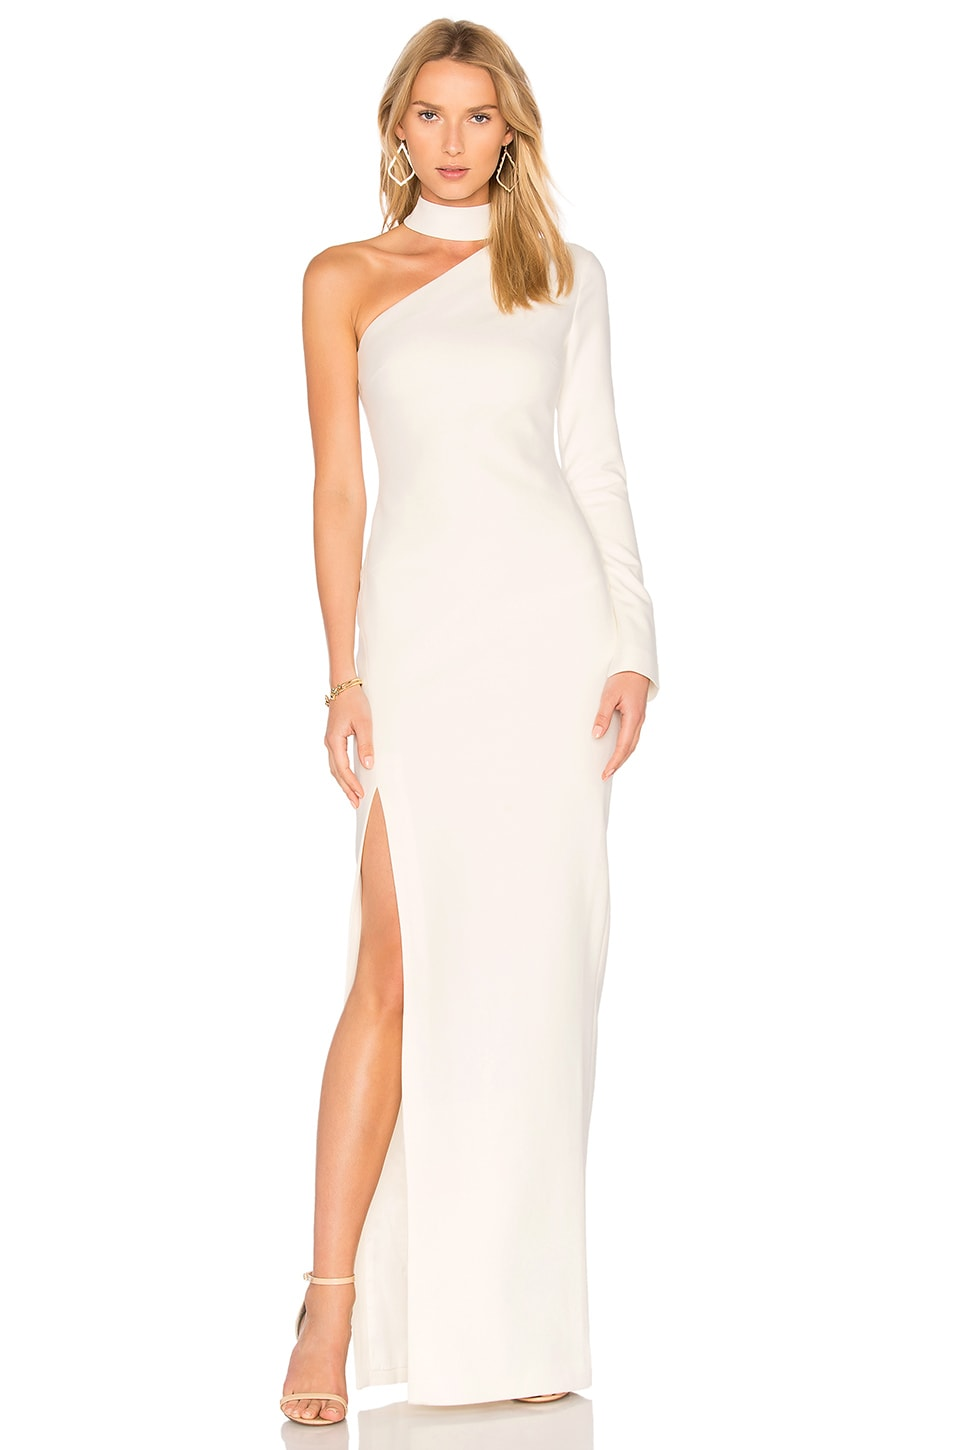 Cinq a Sept Nola Dress in Ivory